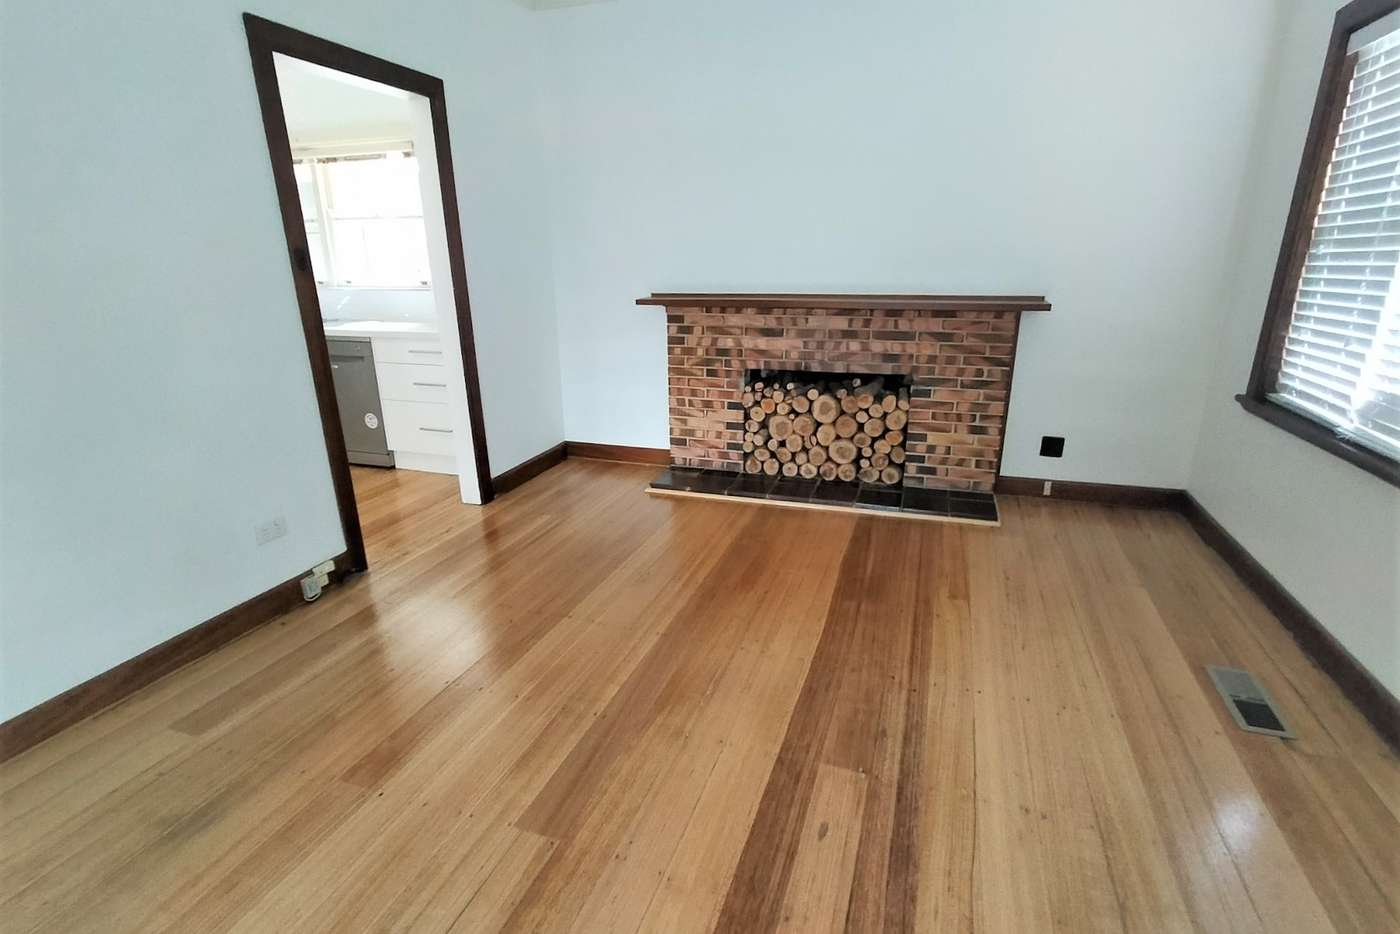 Sixth view of Homely house listing, 256 Elgar Rd, Box Hill South VIC 3128